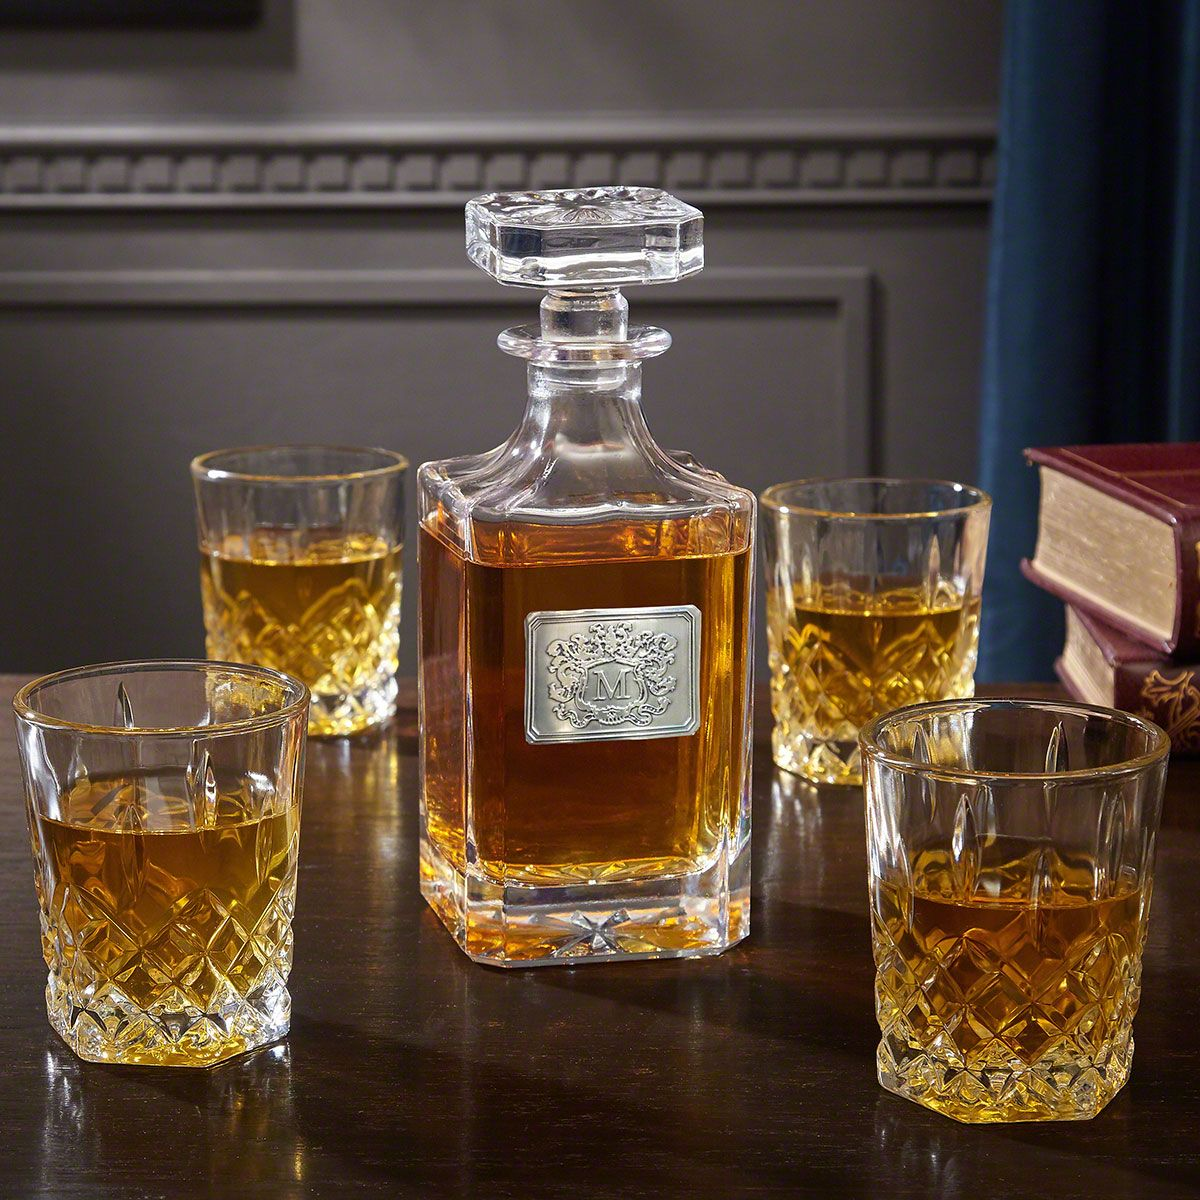 Royal Crest Personalized Liquor Decanter and Glasses Set